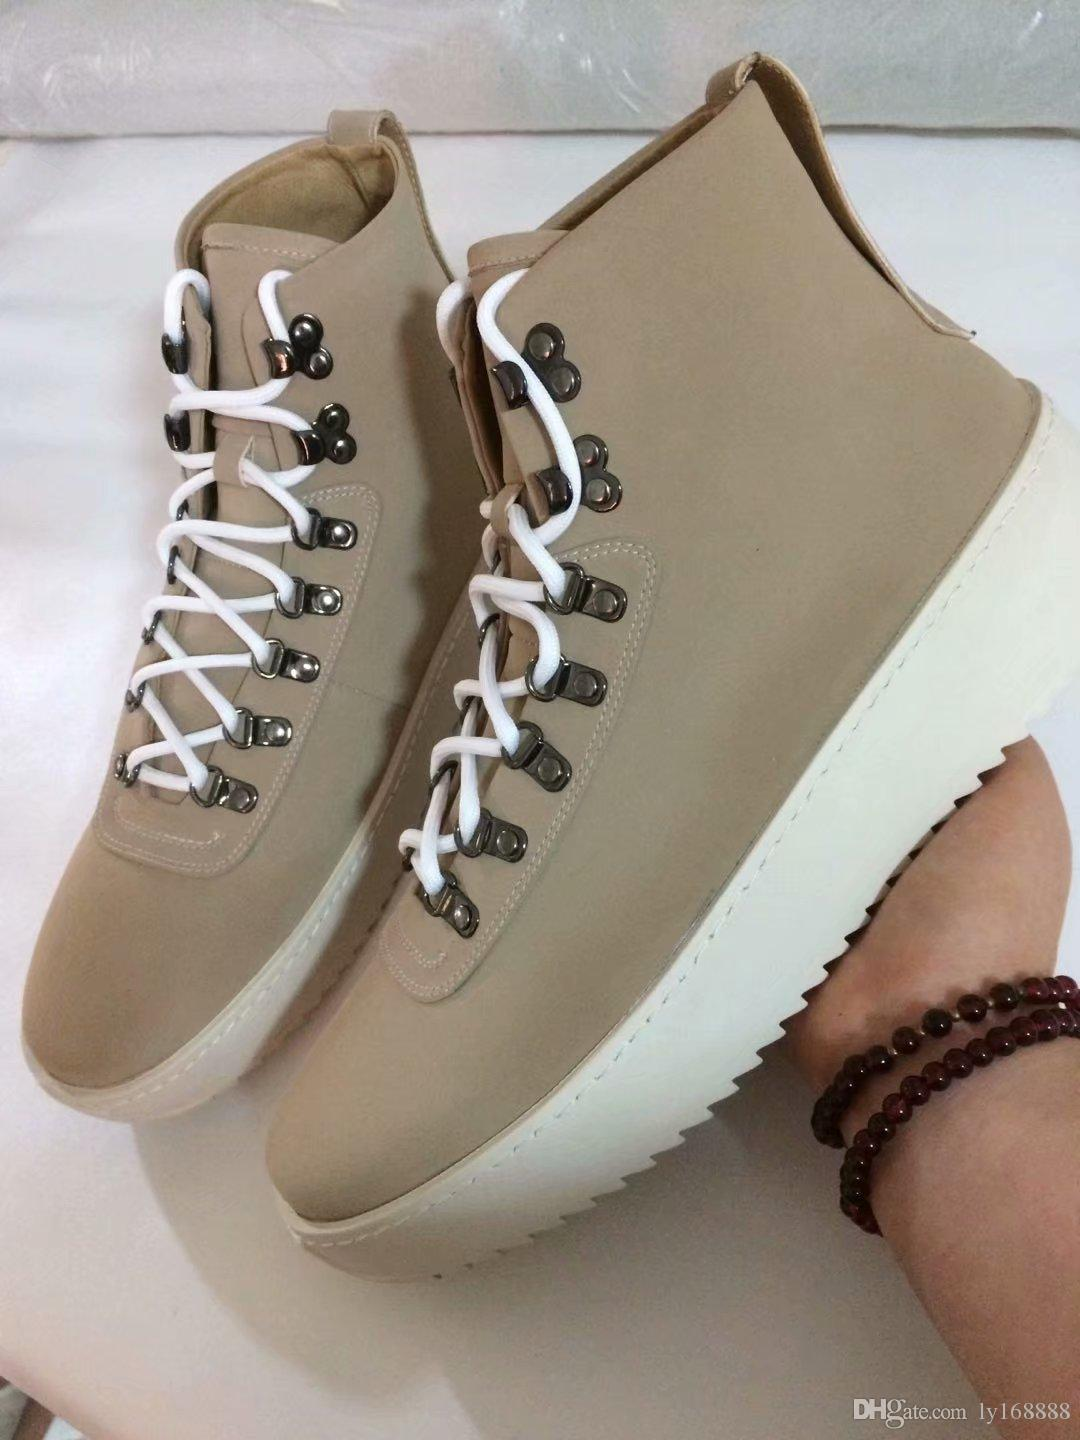 huge selection of e81e8 84ba4 2019 Fog Shoes Fear Of God Top Military Sneakers Hight Army Boots Men And  Women Fashion Shoes Martin Boots 38 46 Womens Shoes Hiking Boots From  Ly168888, ...